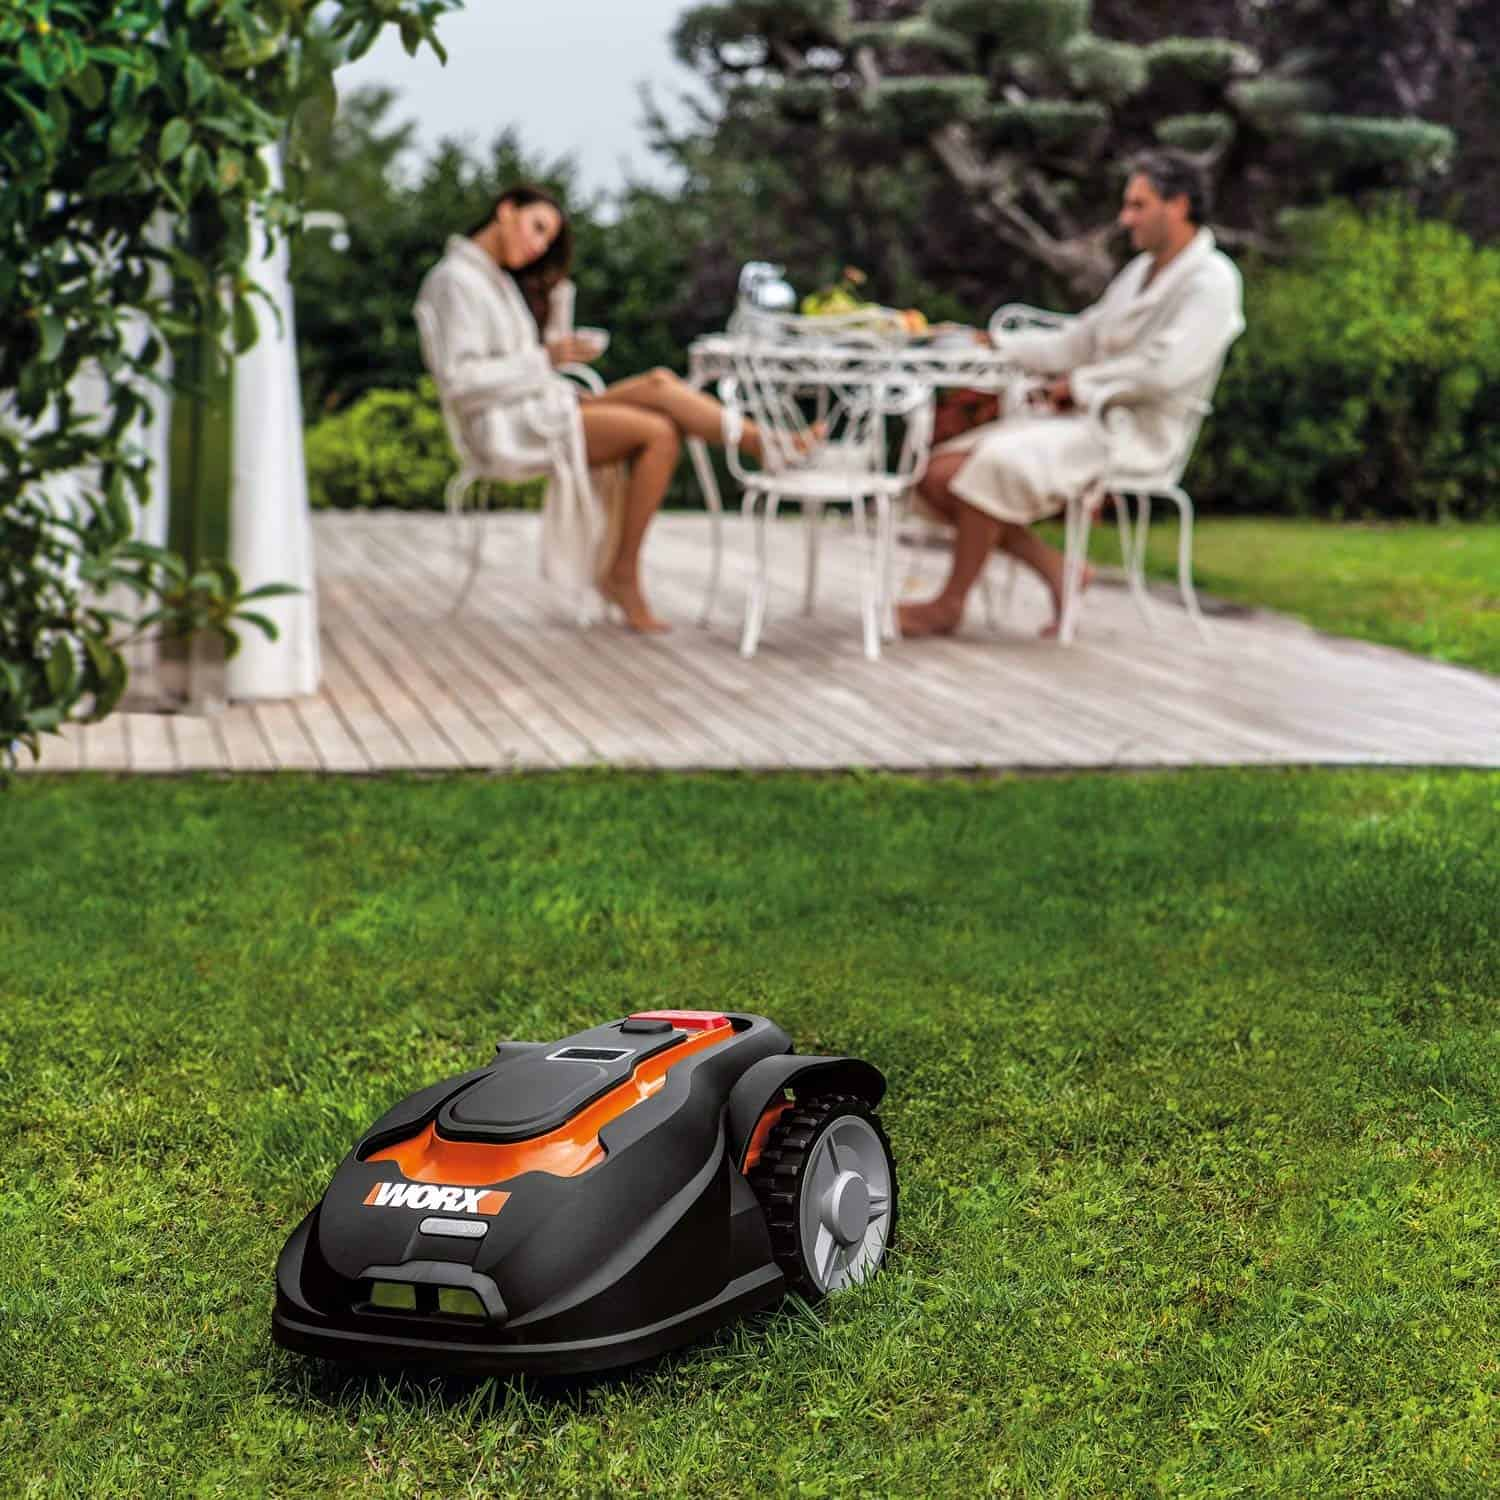 Are robot mowers noisy